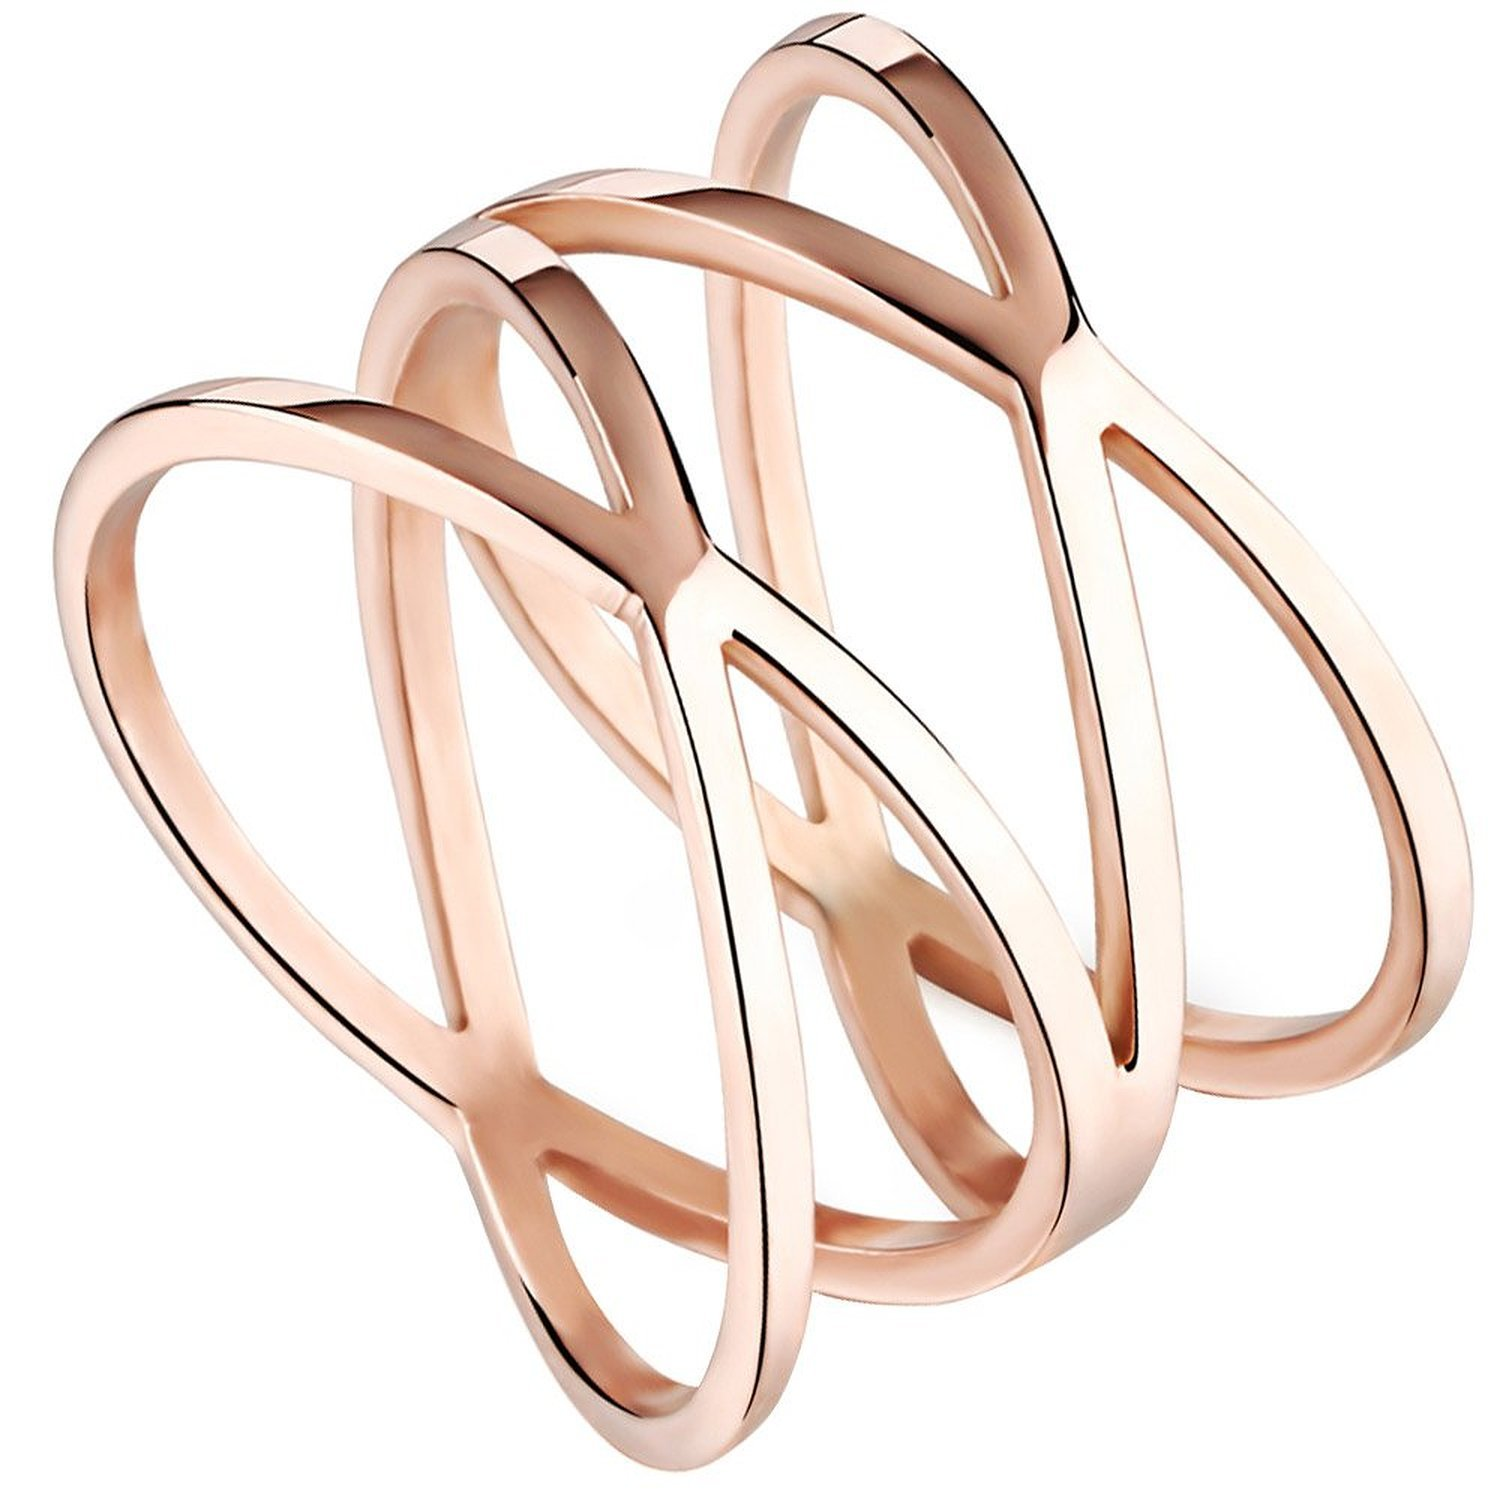 Blowin Womens 14MM Rose Gold Tone Stainless Steel Double X Criss Cross Infinity Ring Engagement Wedding Lady Girls Band (9)